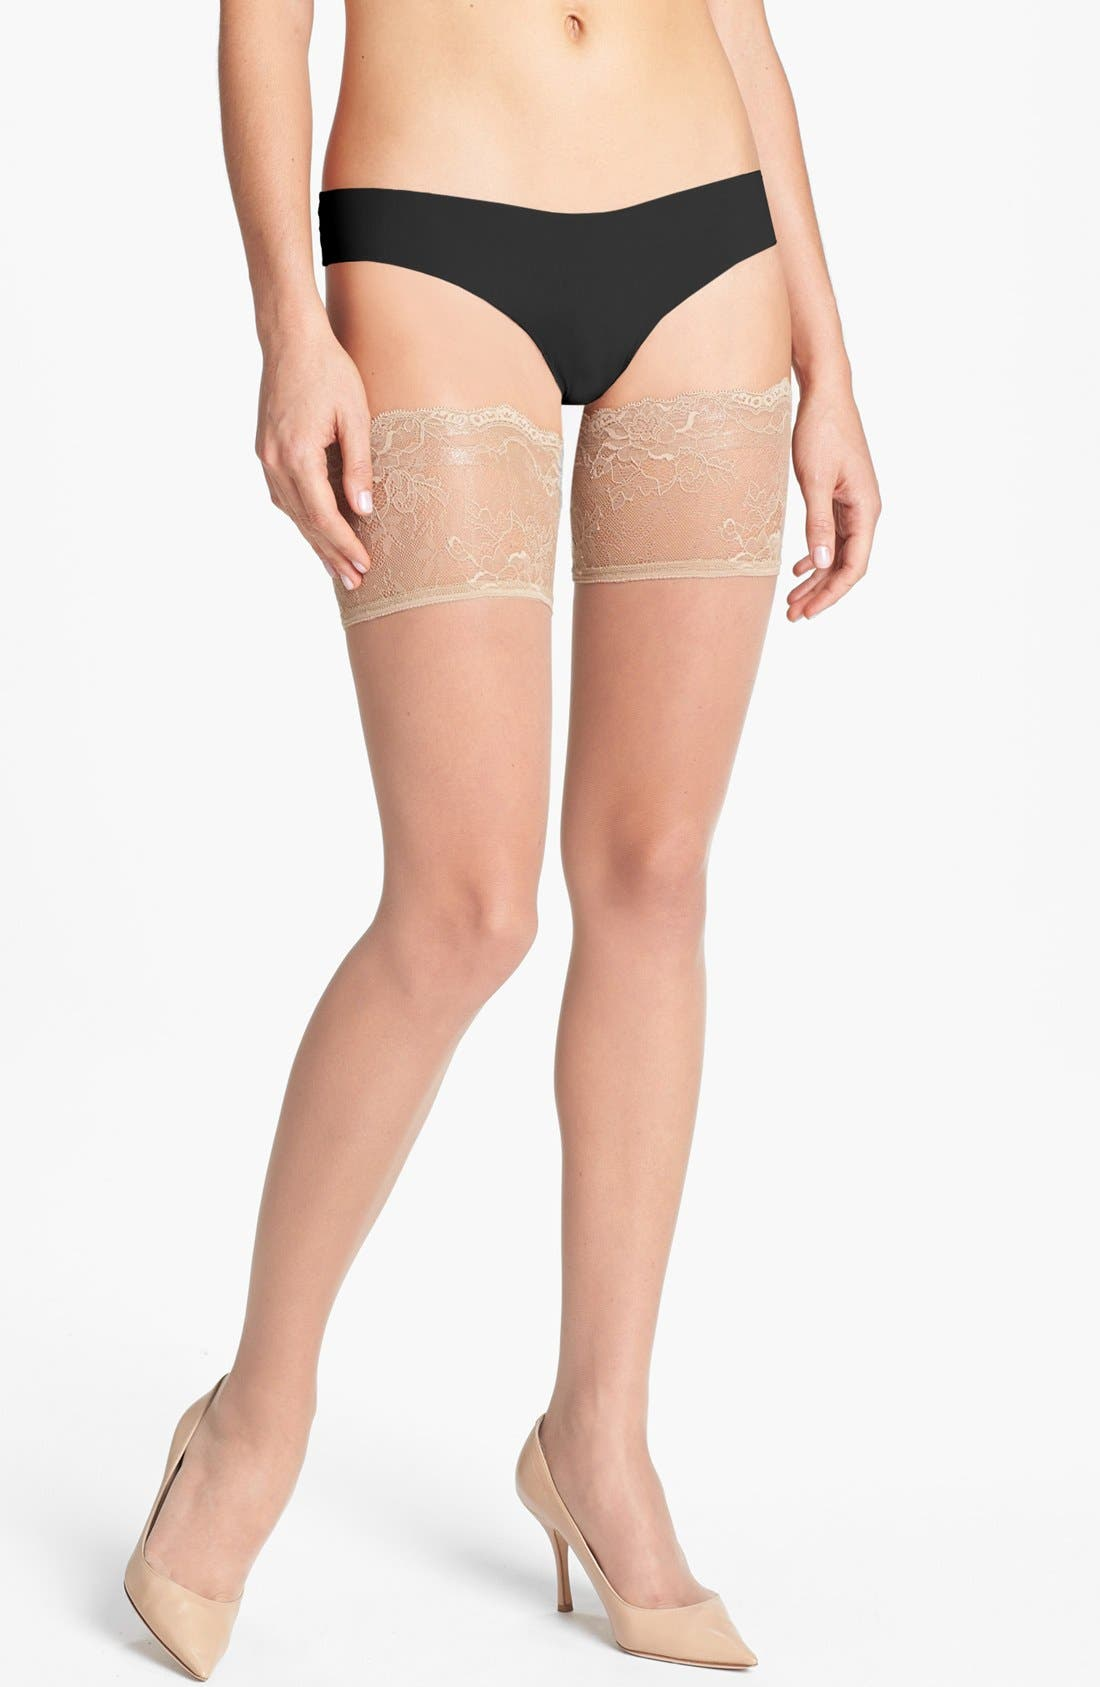 Donna Karan Lace Top Stay-Up Stockings, Nude